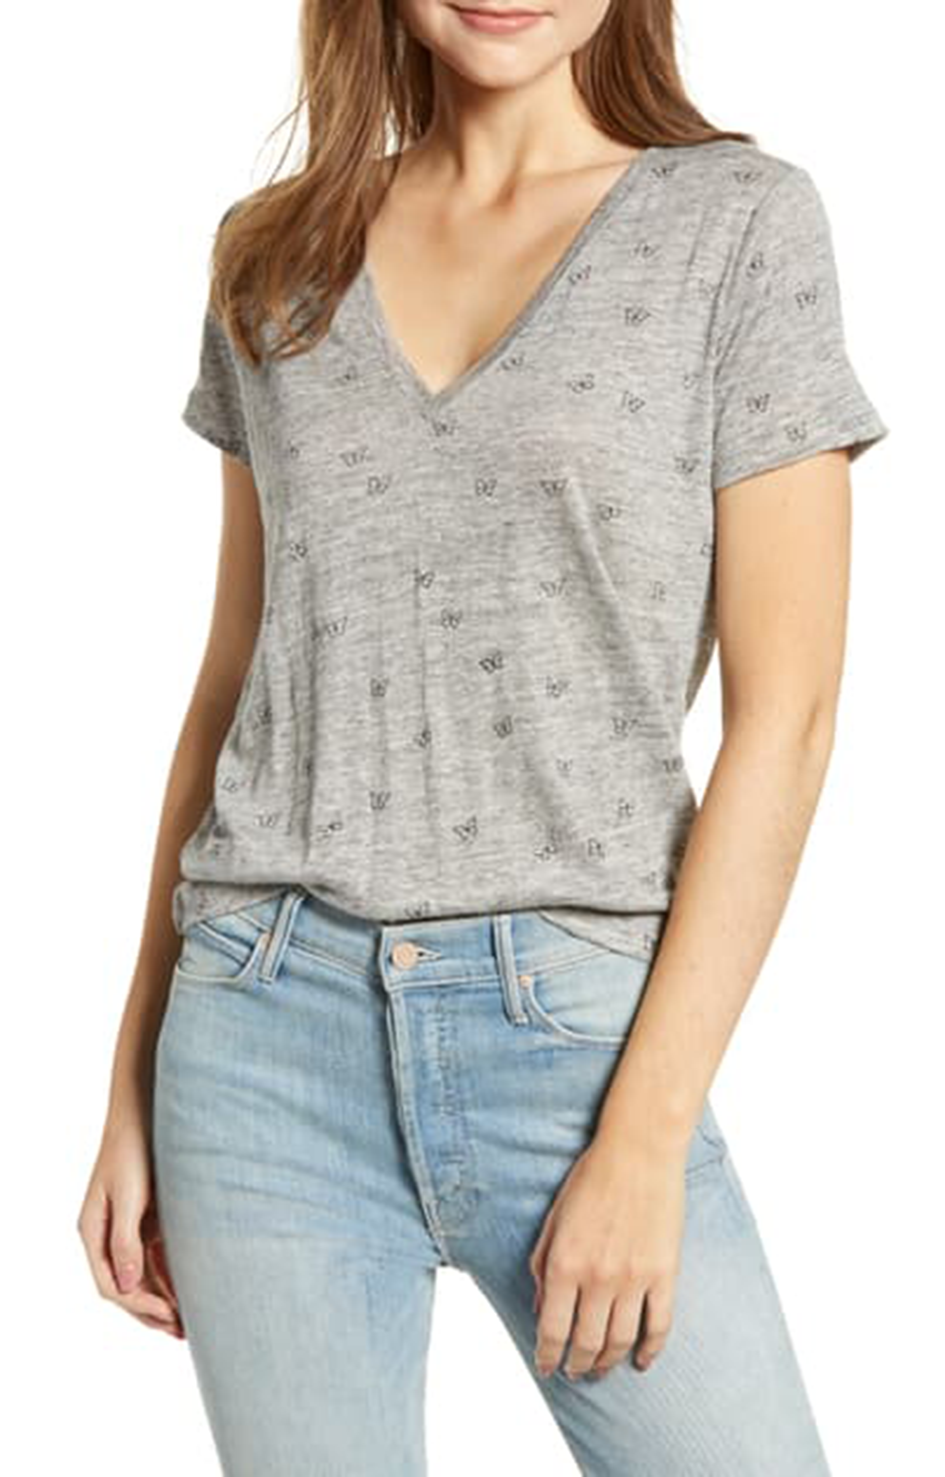 Cara Tee In Heather Grey Butterflies